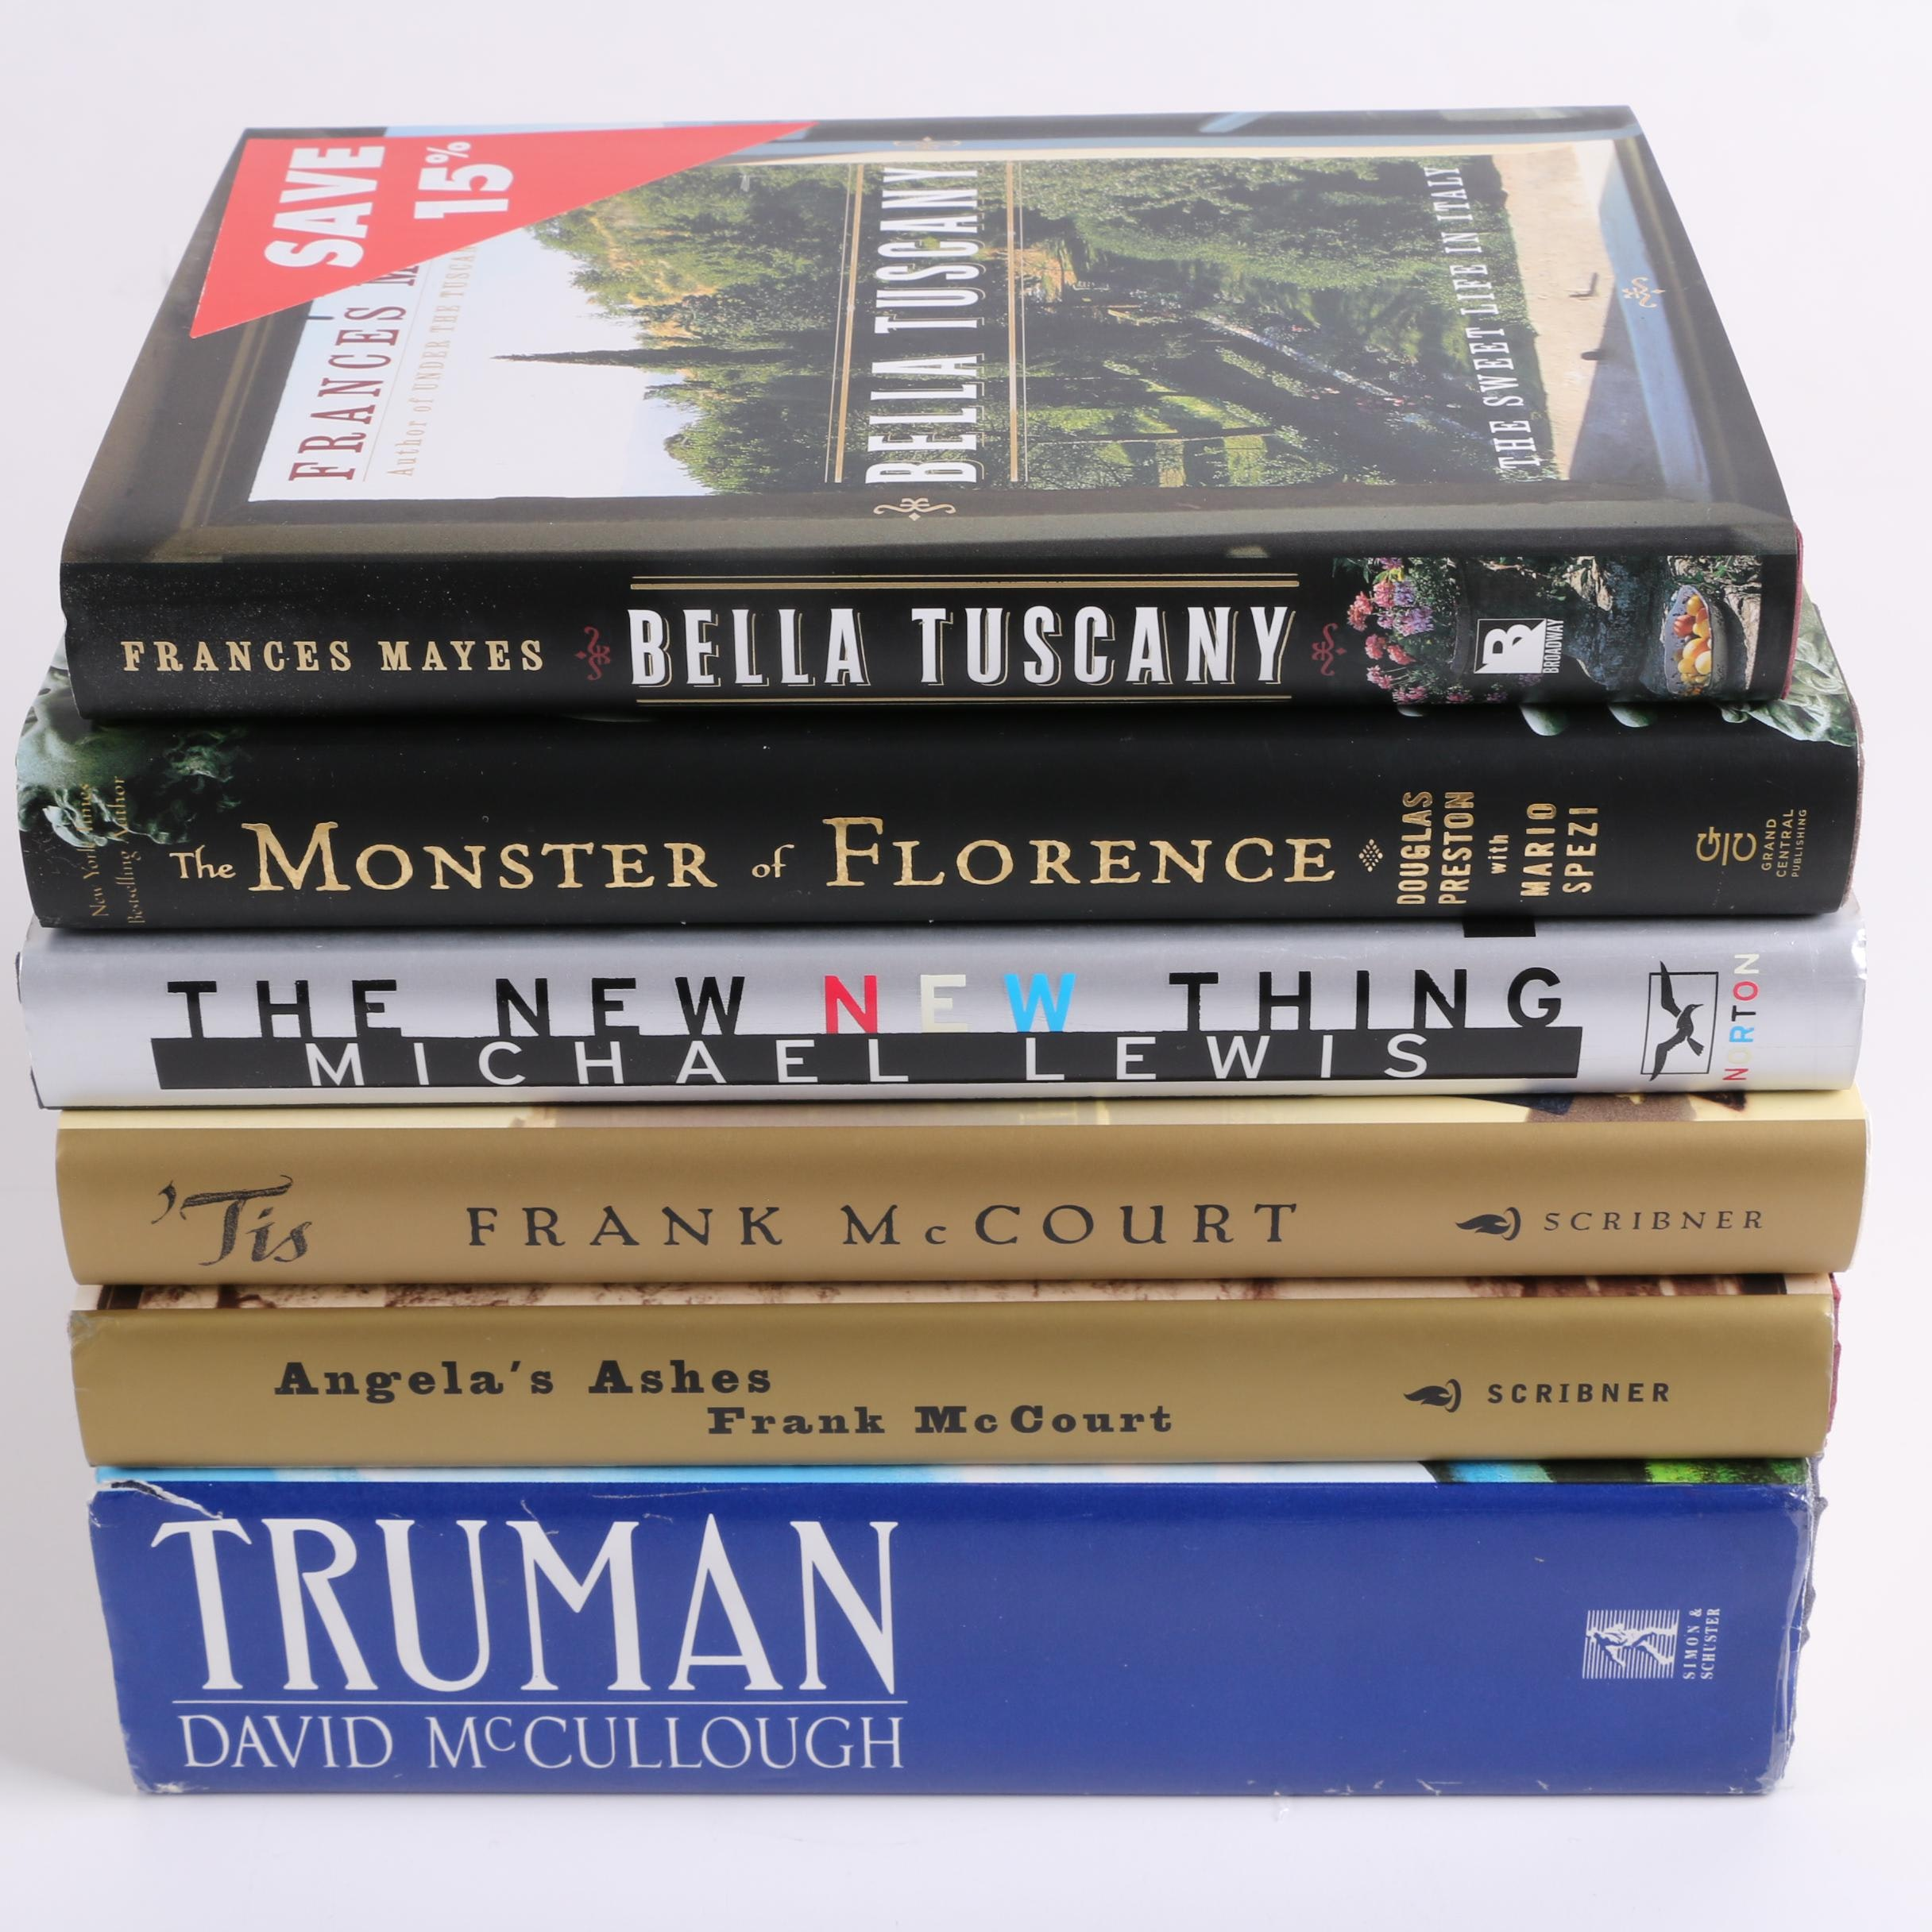 Non-Fiction including Frank McCourt and David McCullough